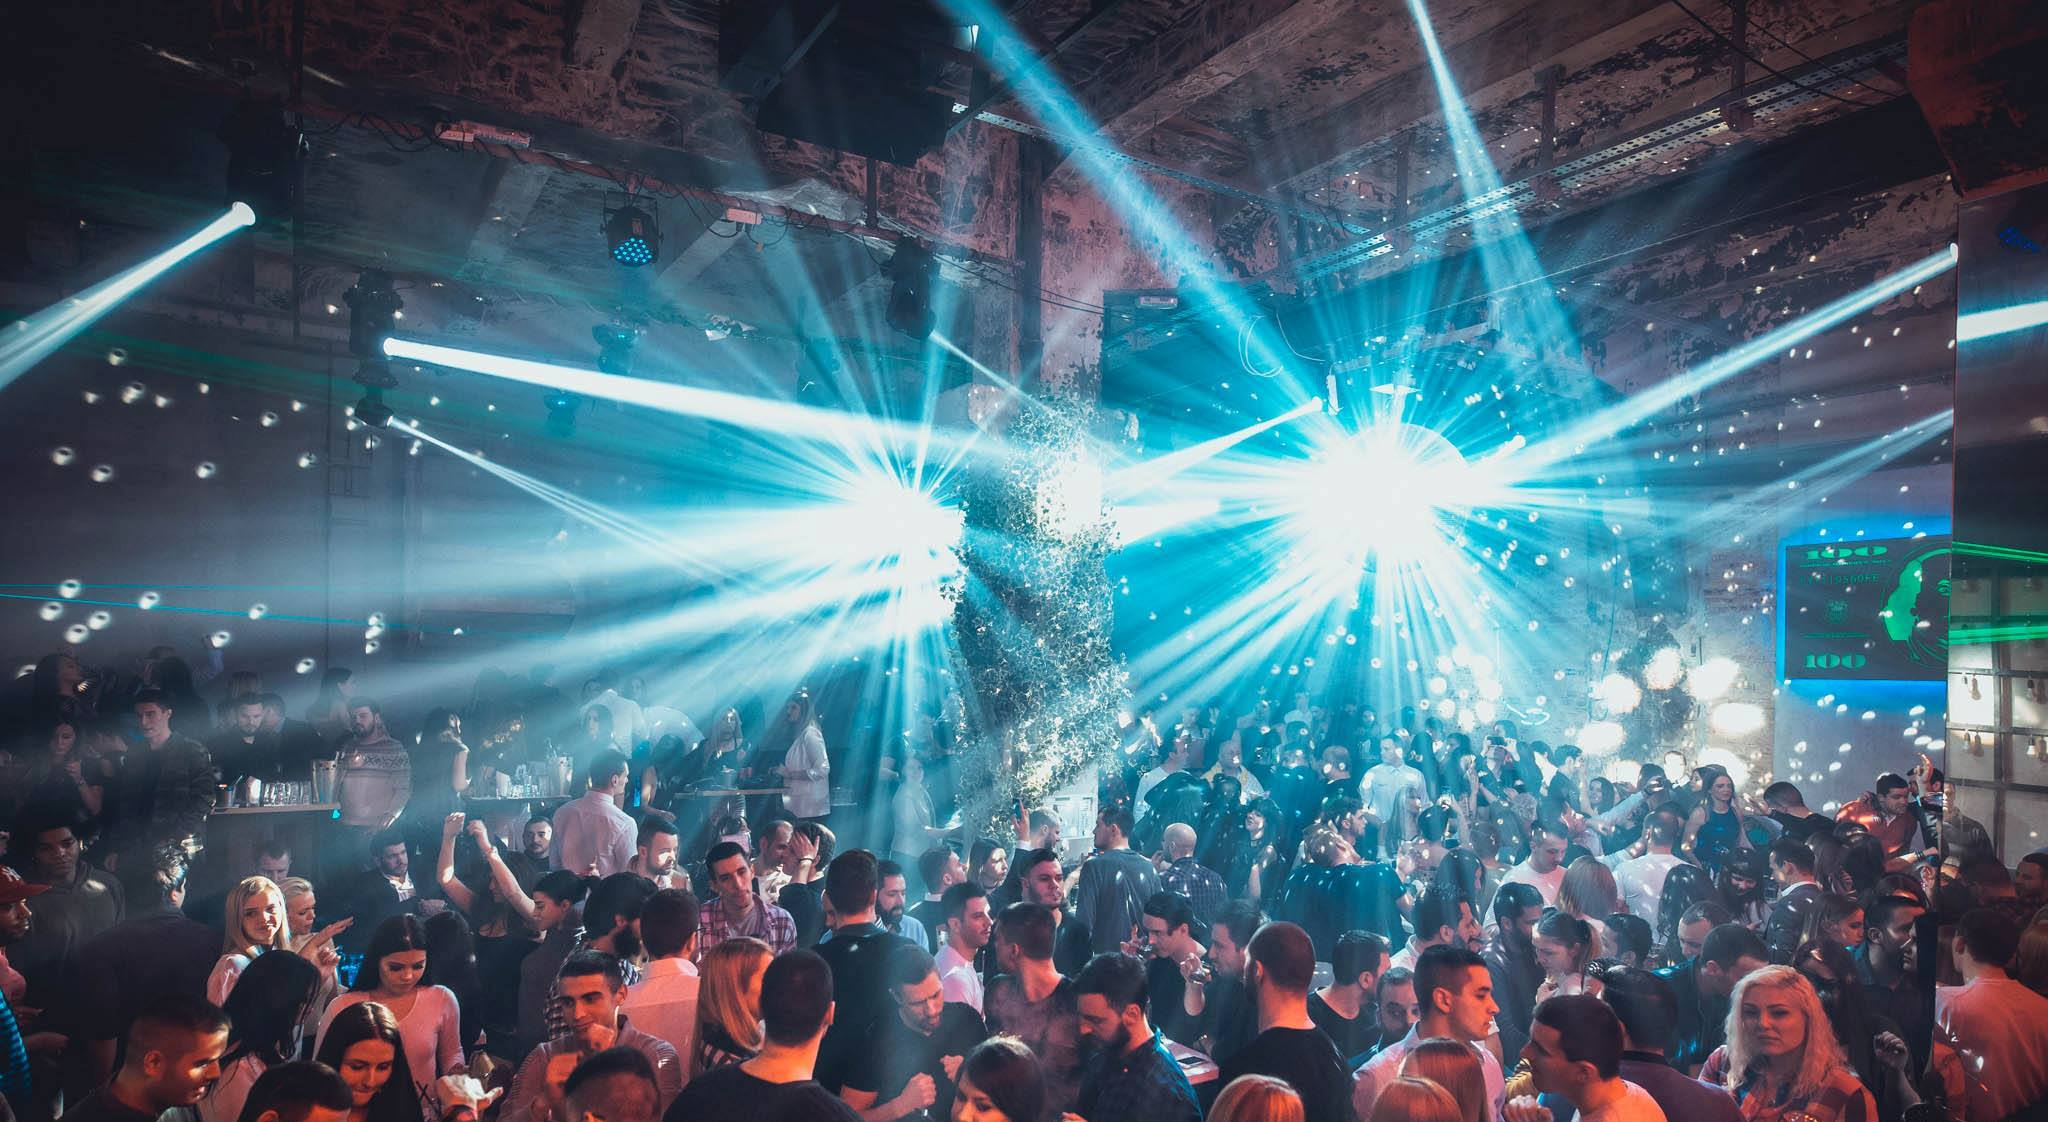 Manual for how to survive Saturday night - Belgrade at night